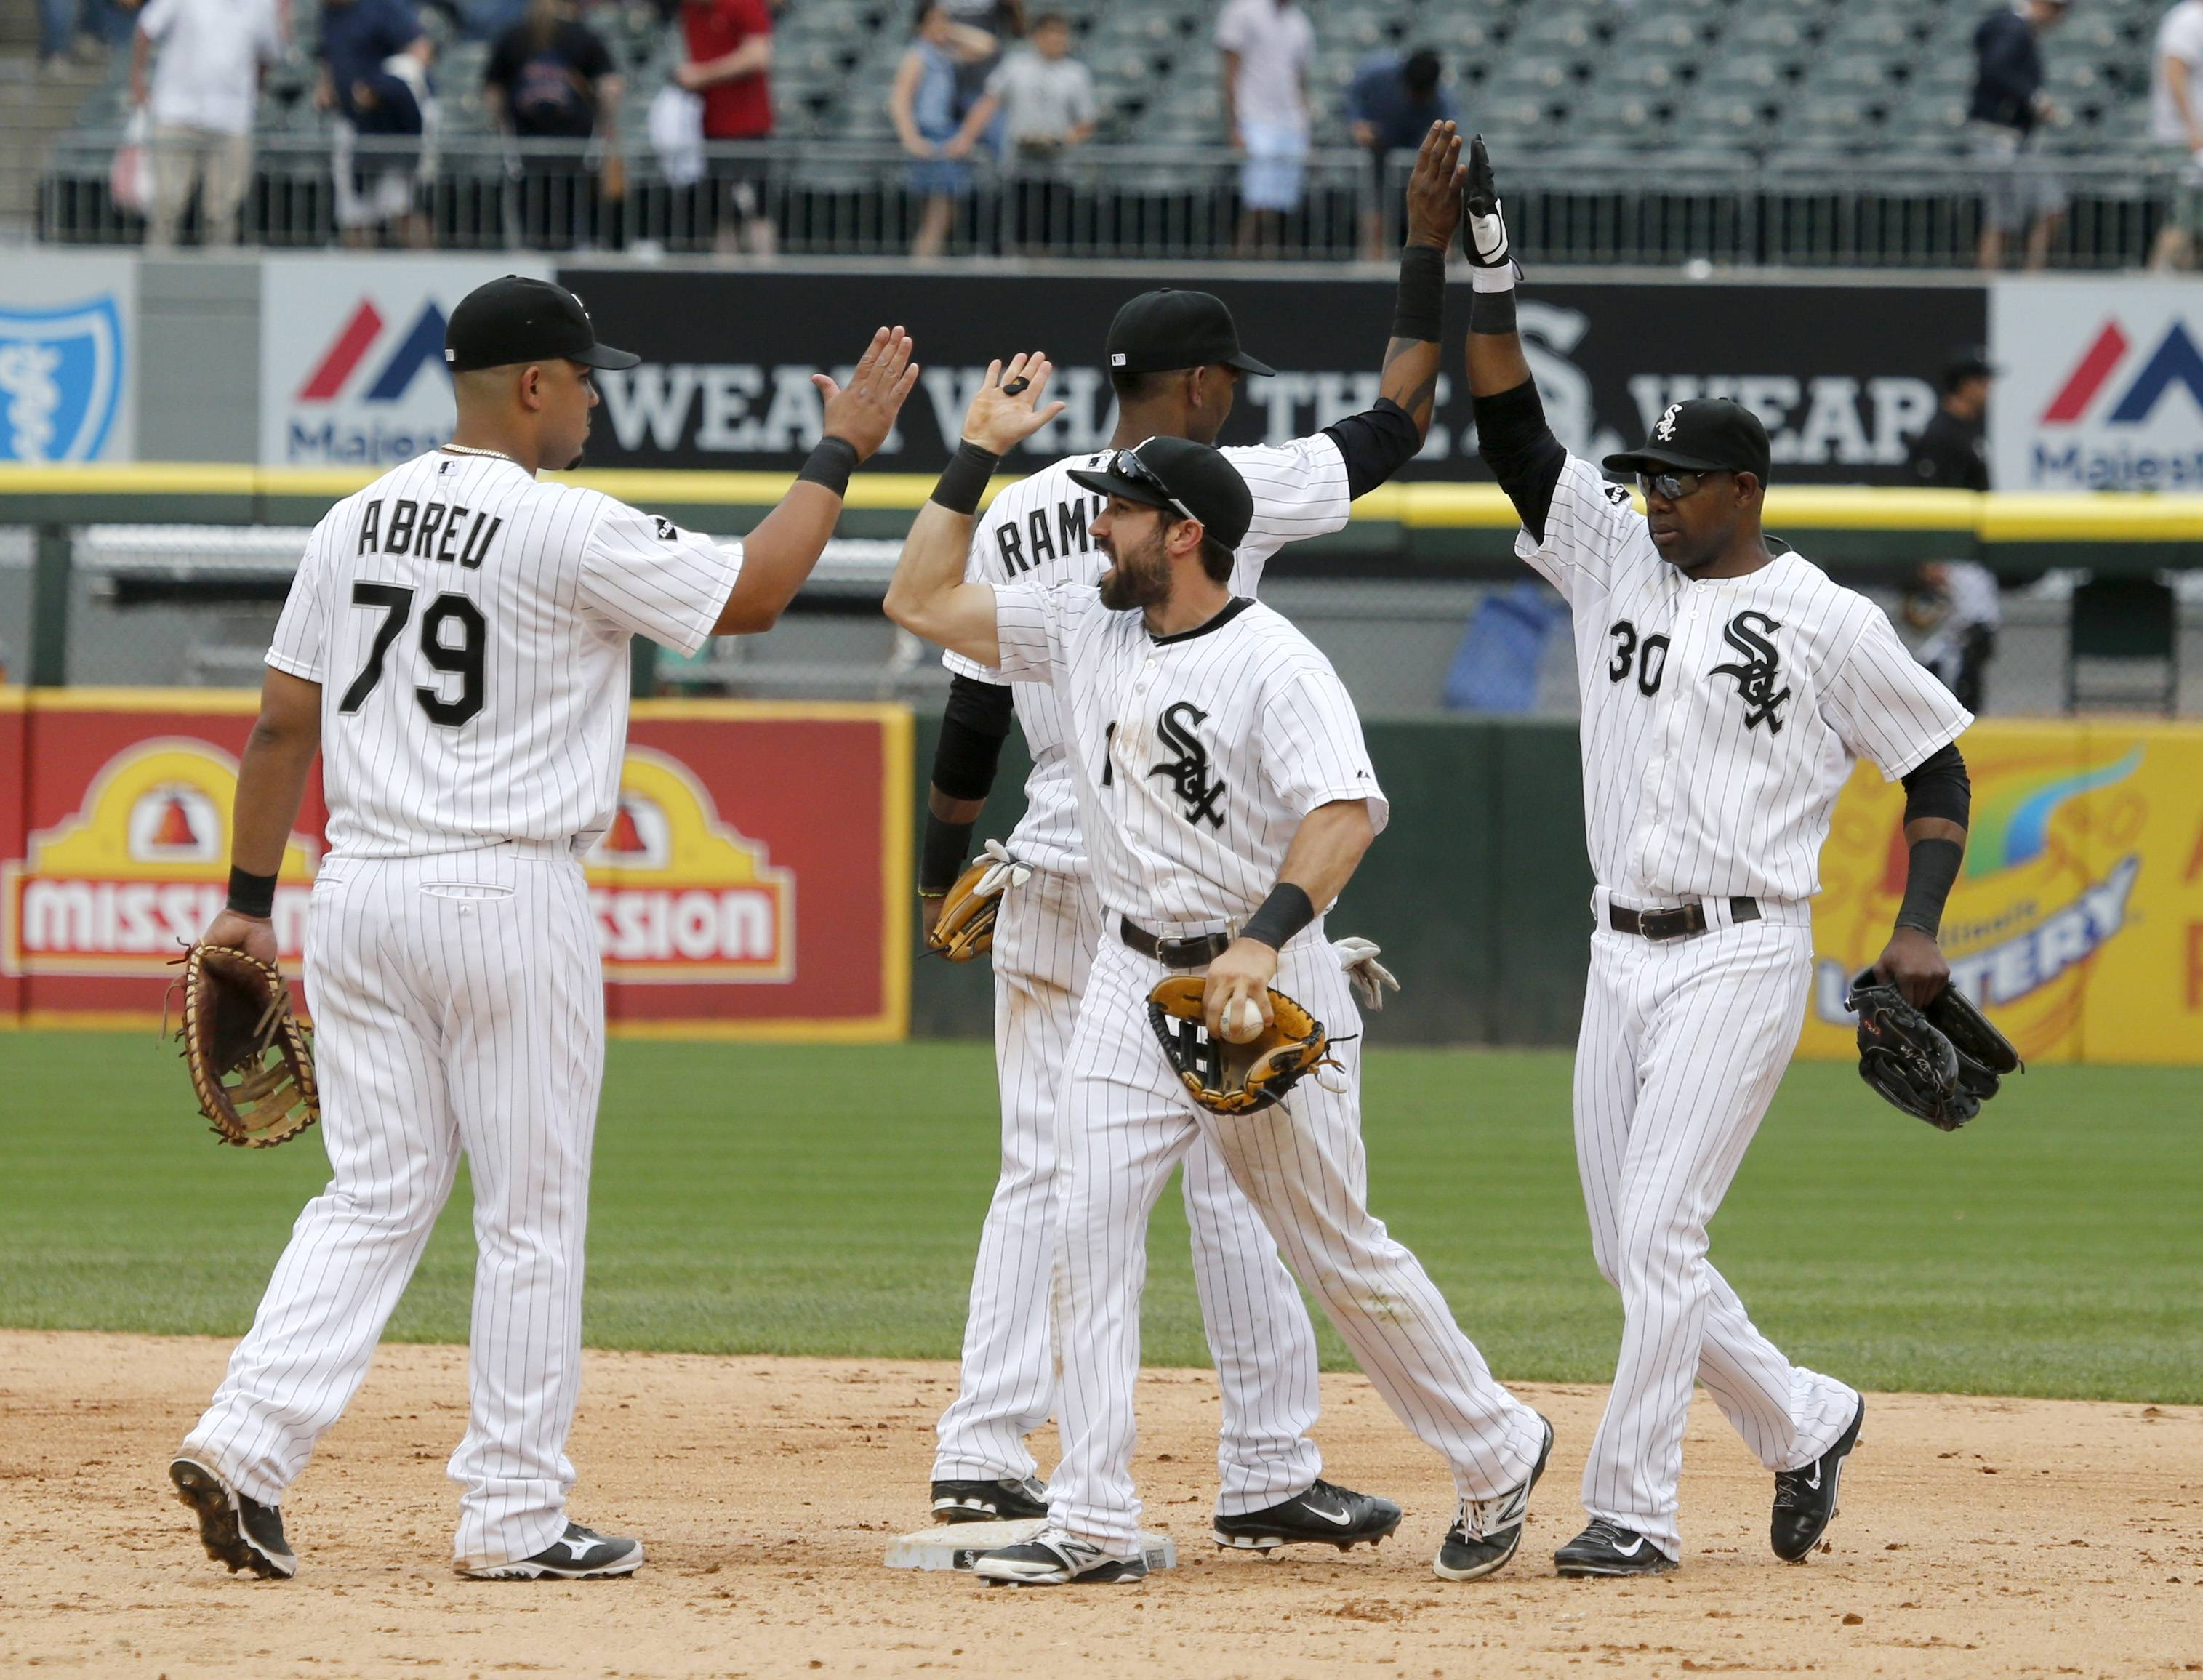 Celebrating the White sox' win over the Giants, from left, are Jose Abreu, Alexei Ramirez, Adam Eaton and Alejandro De Aza on Wednesday at U.S. Cellular Field.